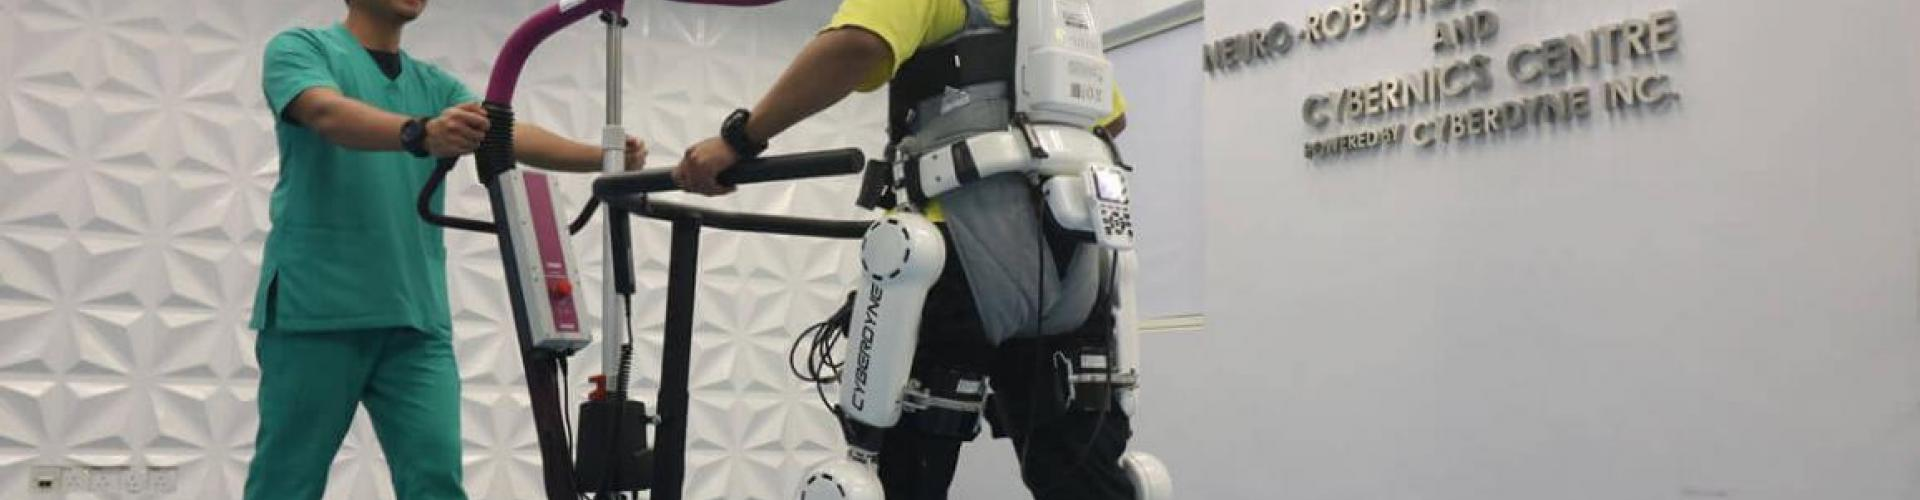 Cyberdine technology (Robot Suit HAL®- Hybrid Assistive Limb) is used for rehabilitation of paralyzed limbs at SOCSO's Tun Razak Rehabilitation Centre.